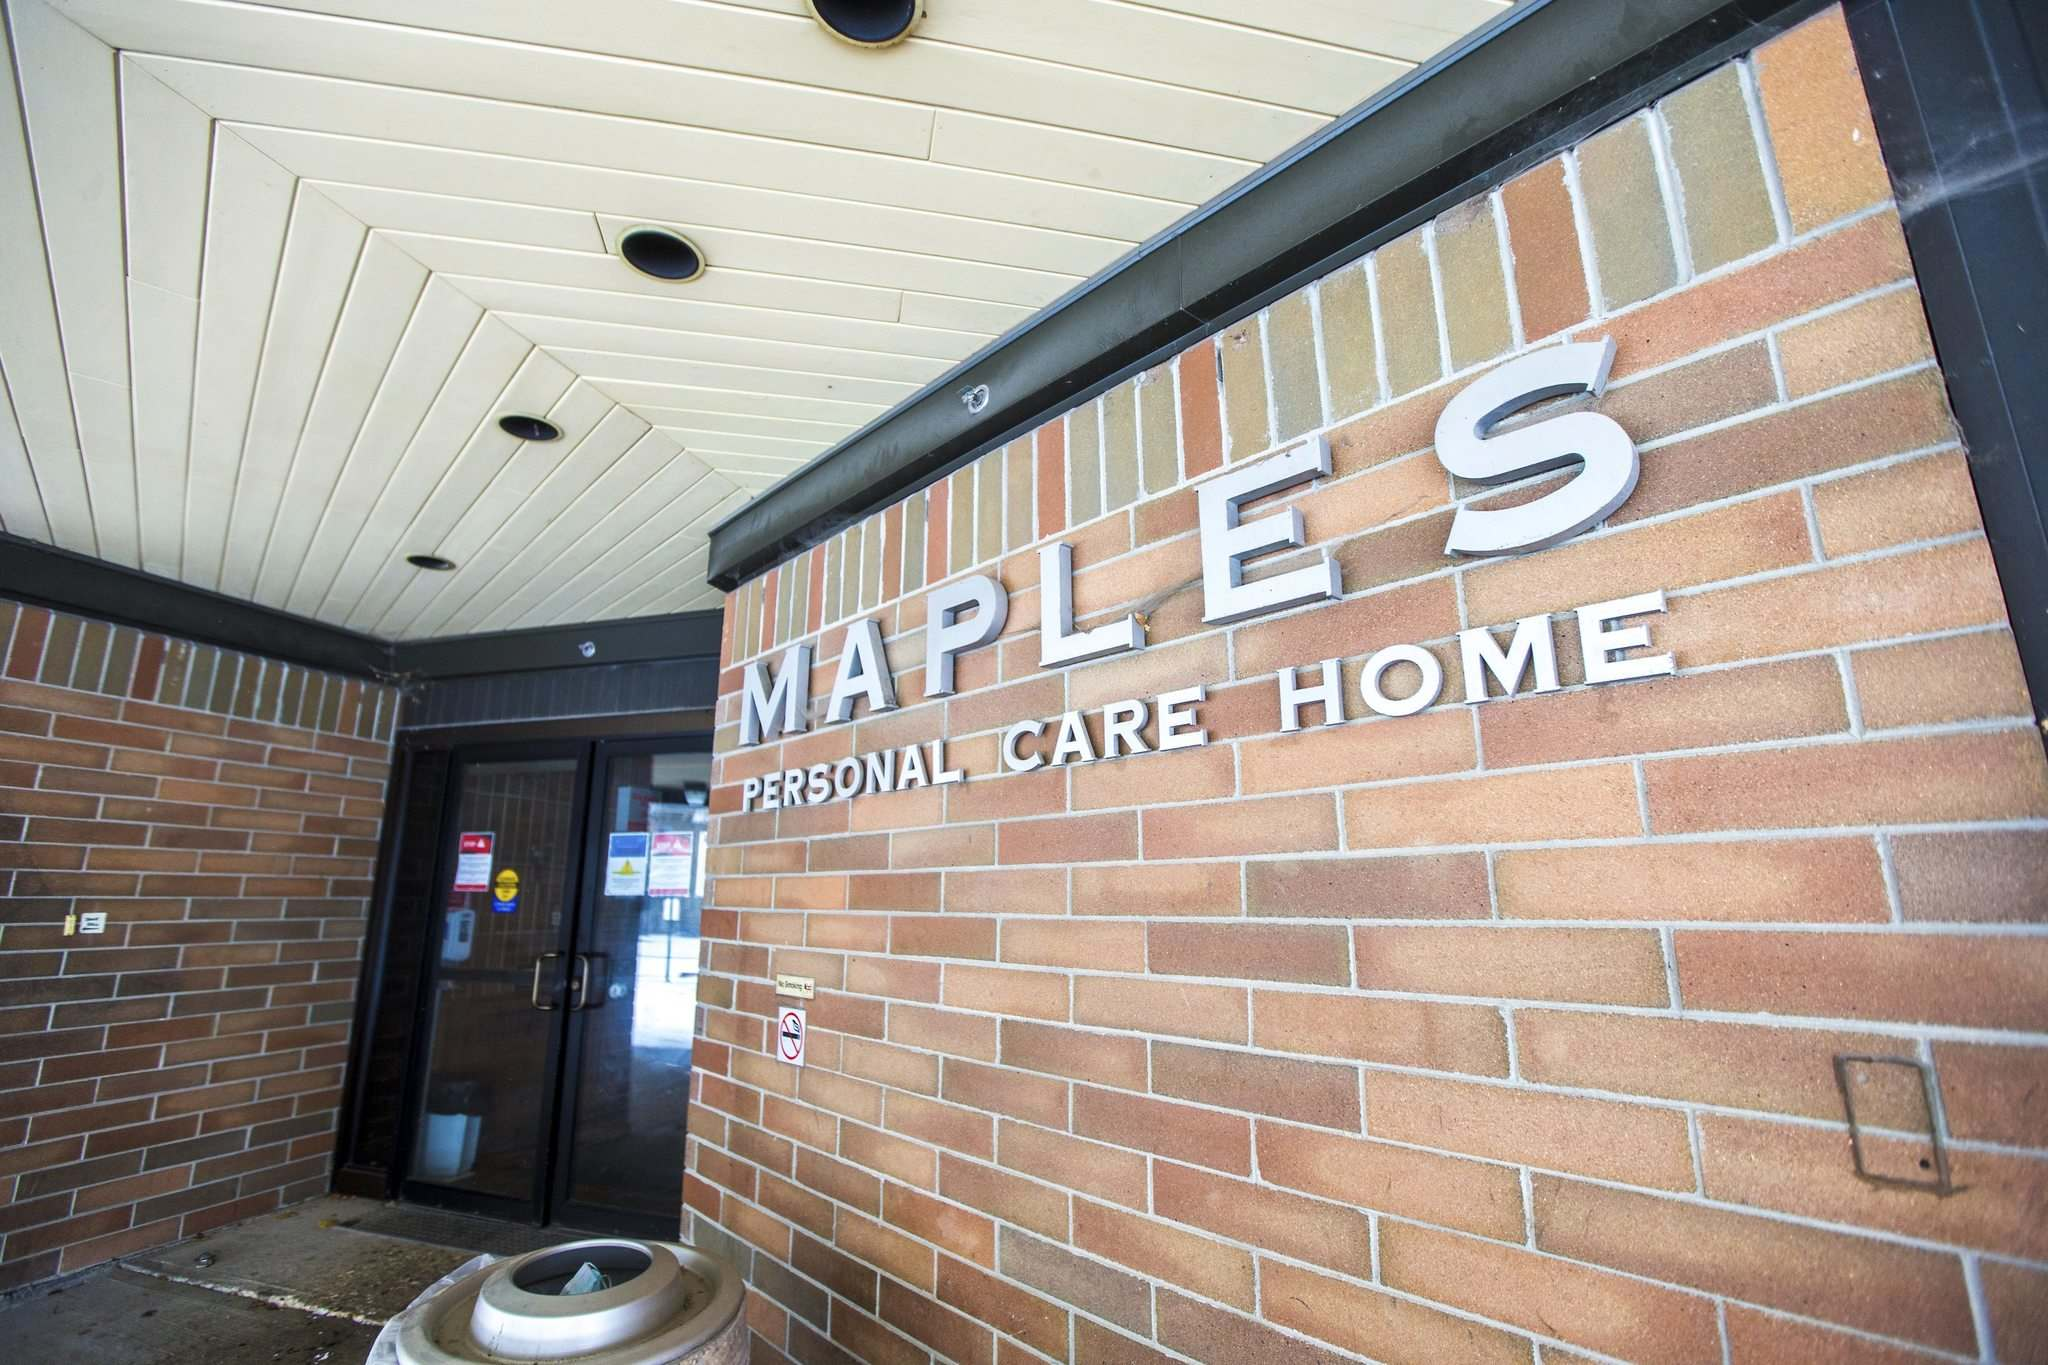 MIKAELA MACKENZIE / FREE PRESS FILES</p><p>When Maples requested staffing assistance from the Winnipeg Regional Health Authority prior to its devastating outbreak, it was denied.